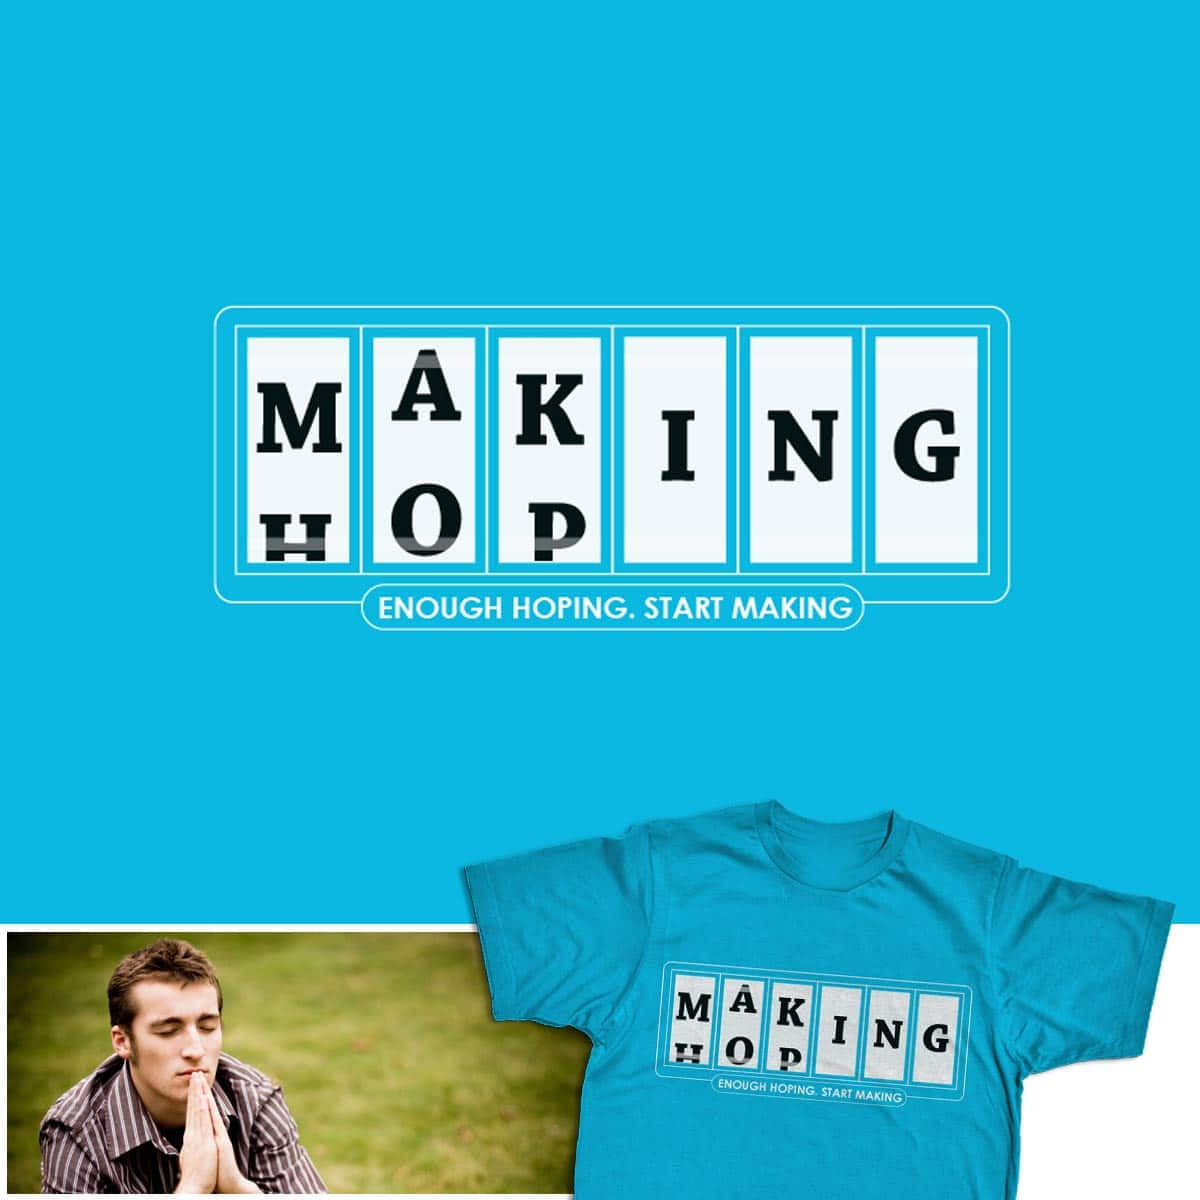 Enough Hoping, Start Making by radiomode on Threadless